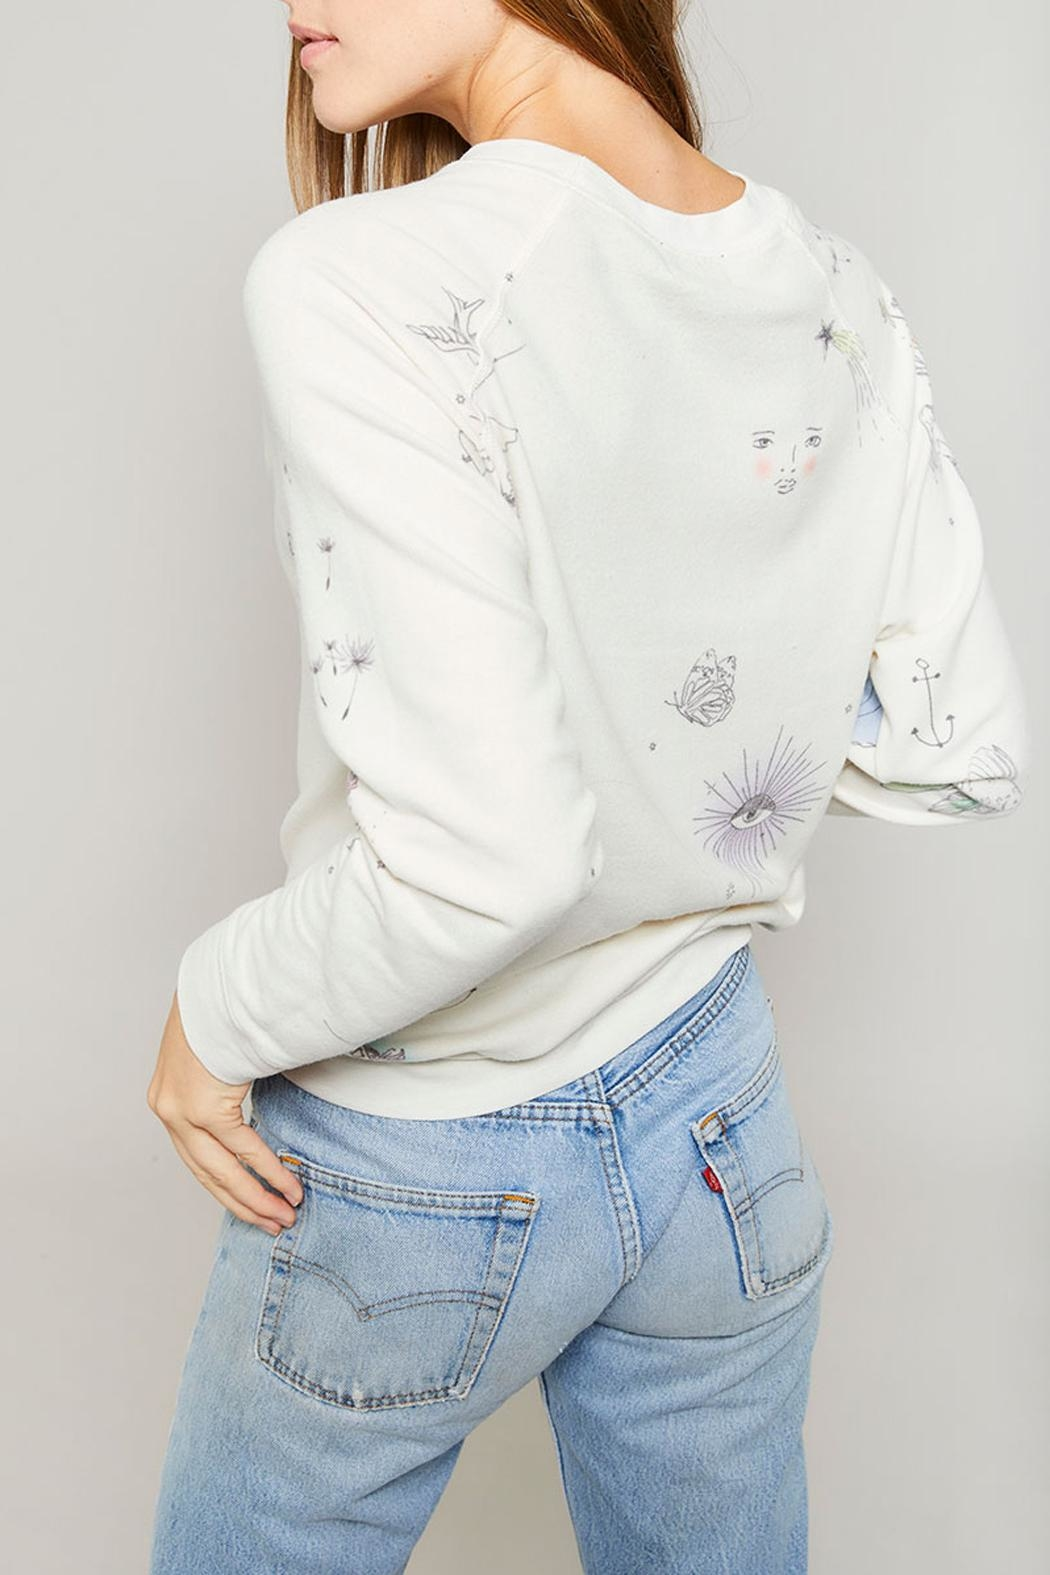 All Things Fabulous Catalina Raglan Sweater - Side Cropped Image